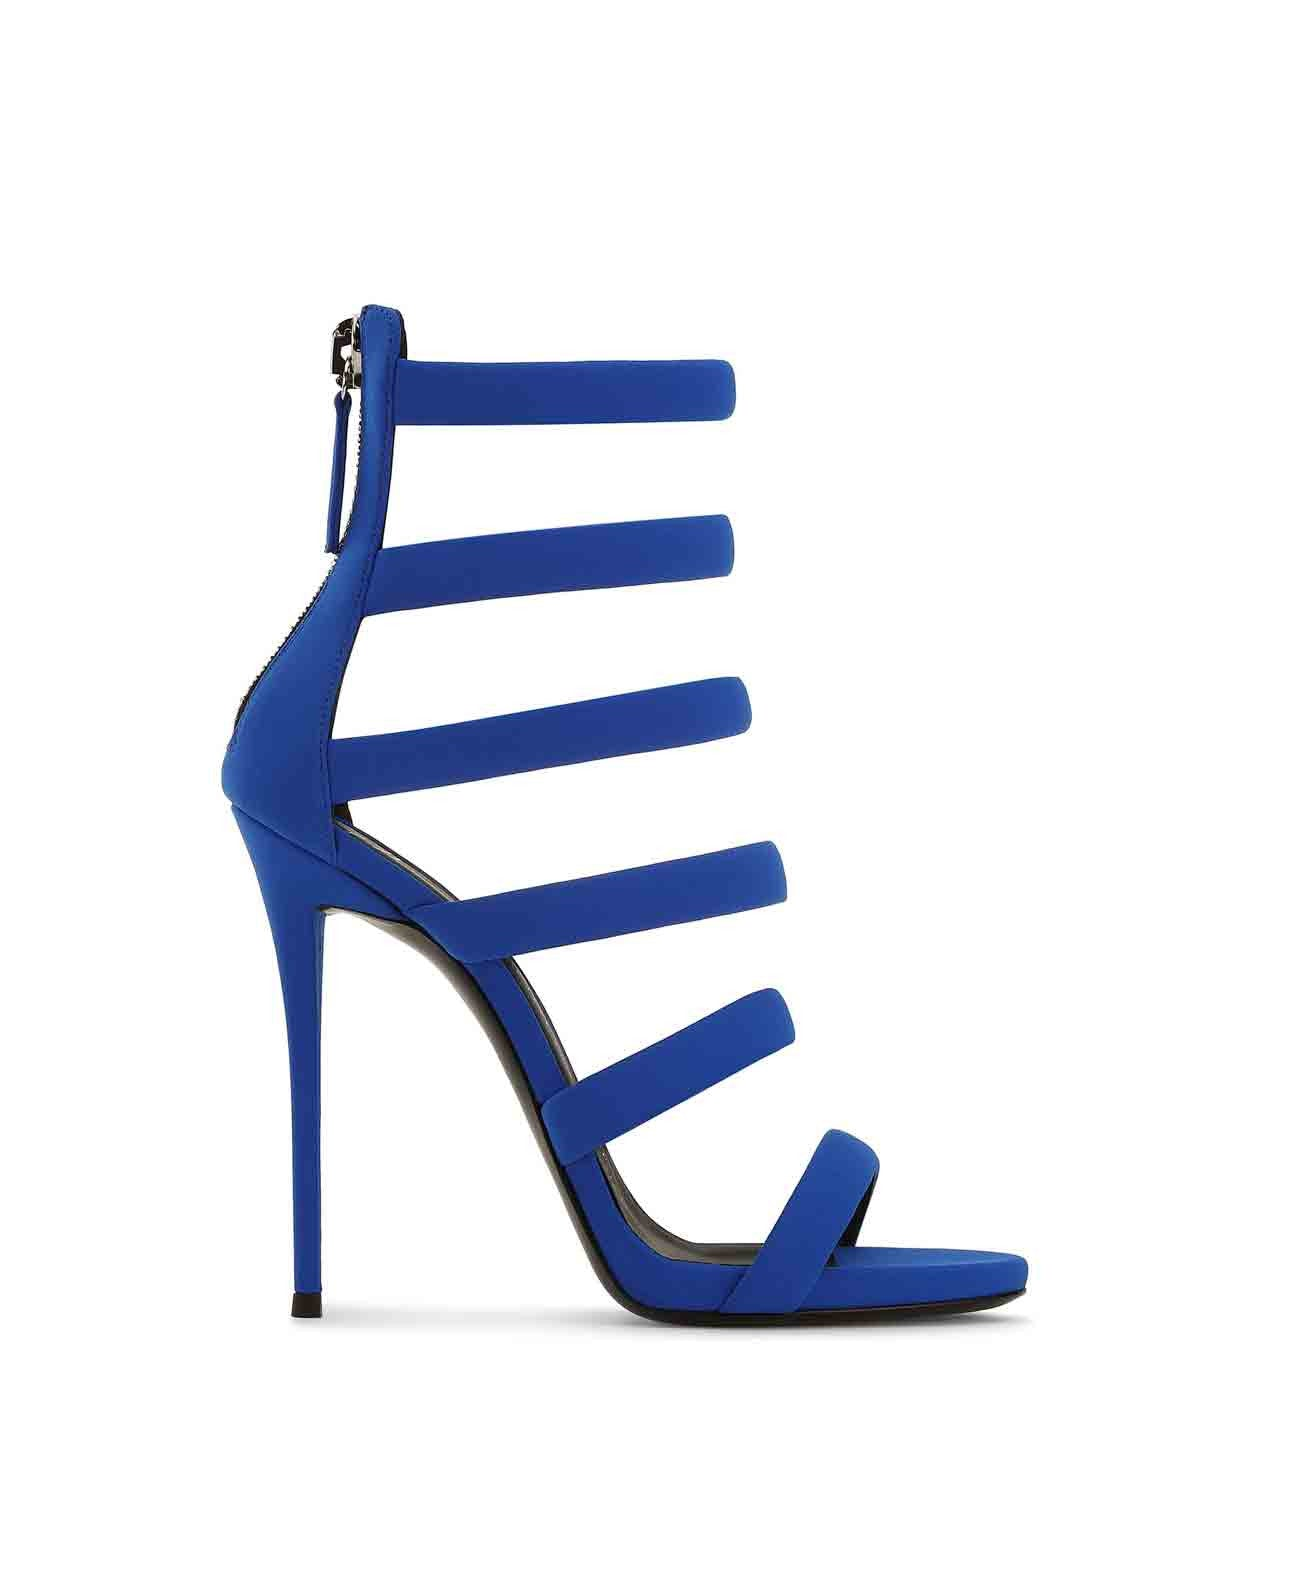 Chantal High Heel Sandal